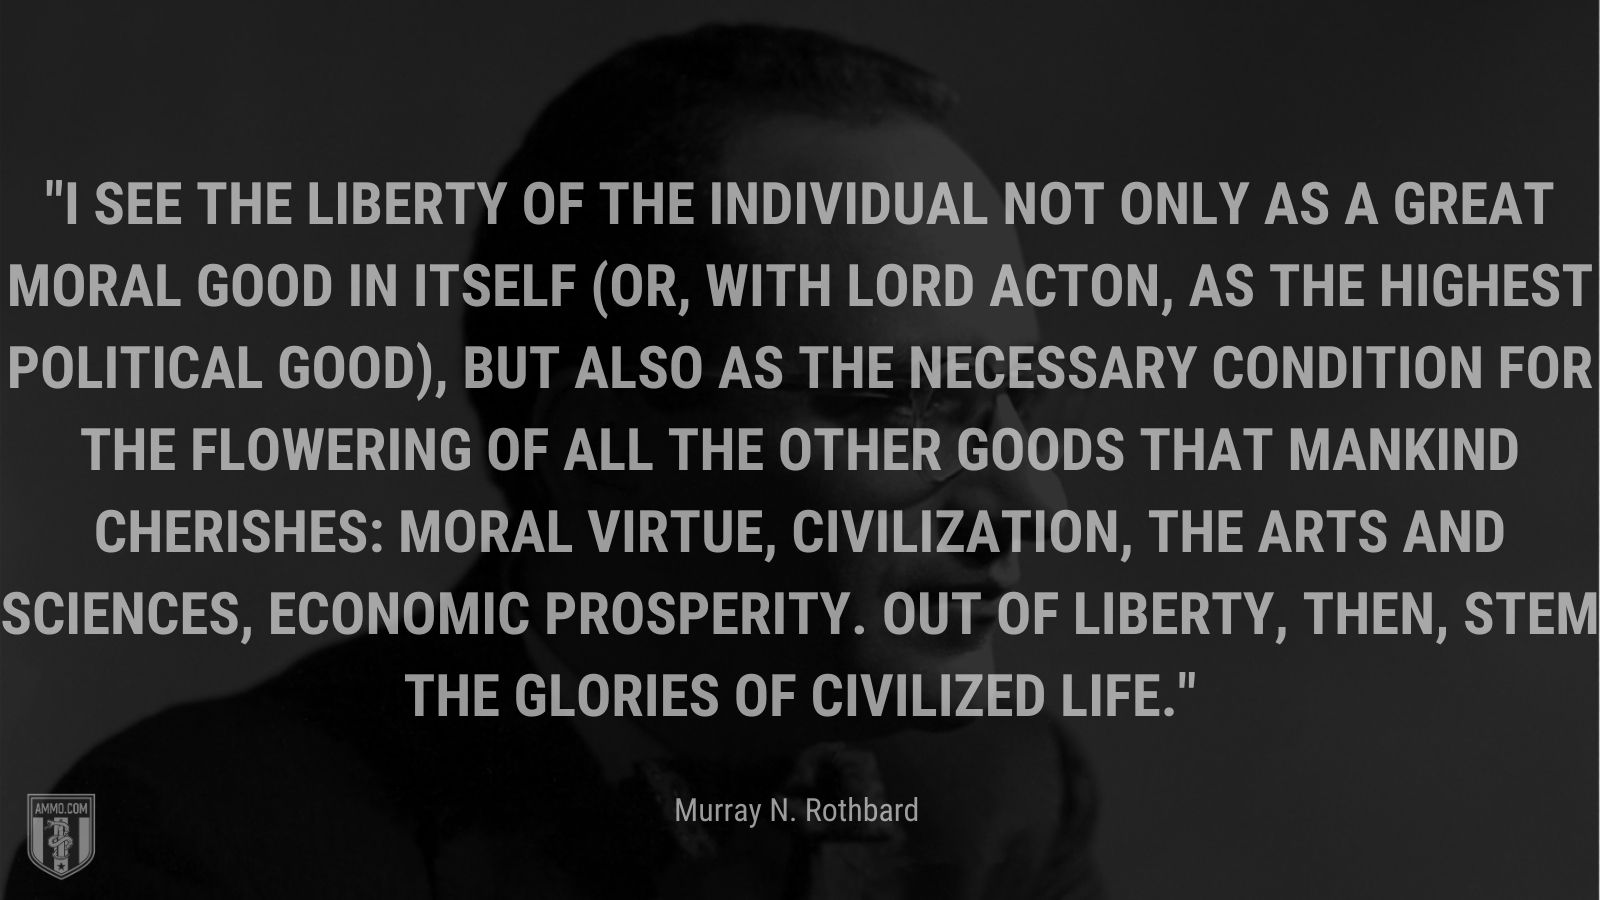 """""""I see the liberty of the individual not only as a great moral good in itself (or, with Lord Acton, as the highest political good), but also as the necessary condition for the flowering of all the other goods that mankind cherishes: moral virtue, civilization, the arts and sciences, economic prosperity. Out of liberty, then, stem the glories of civilized life. - Murray N. Rothbard"""